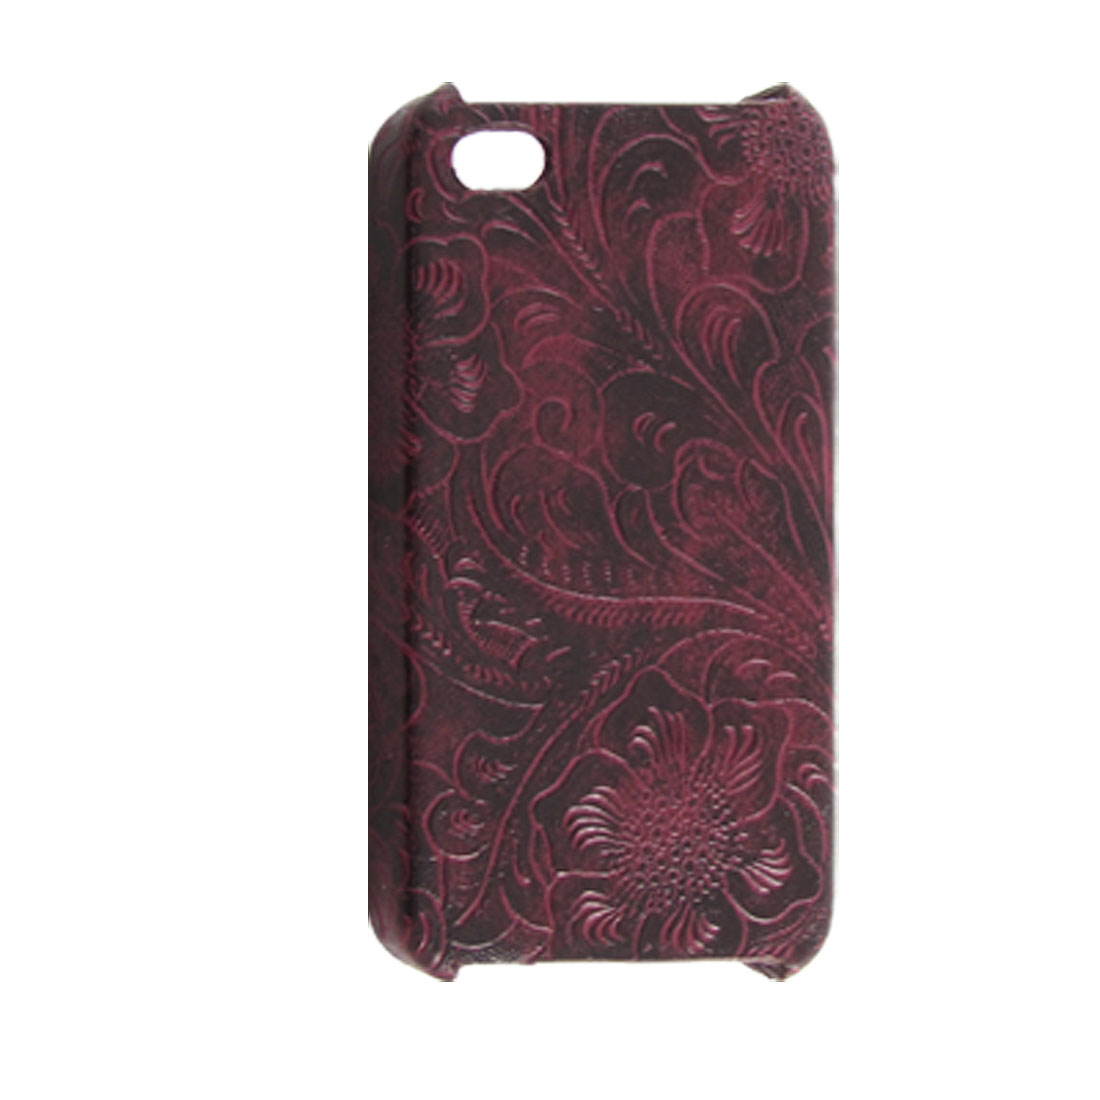 Hard Plastic Faux Leather Coated Back Cover iPhone 4 4G